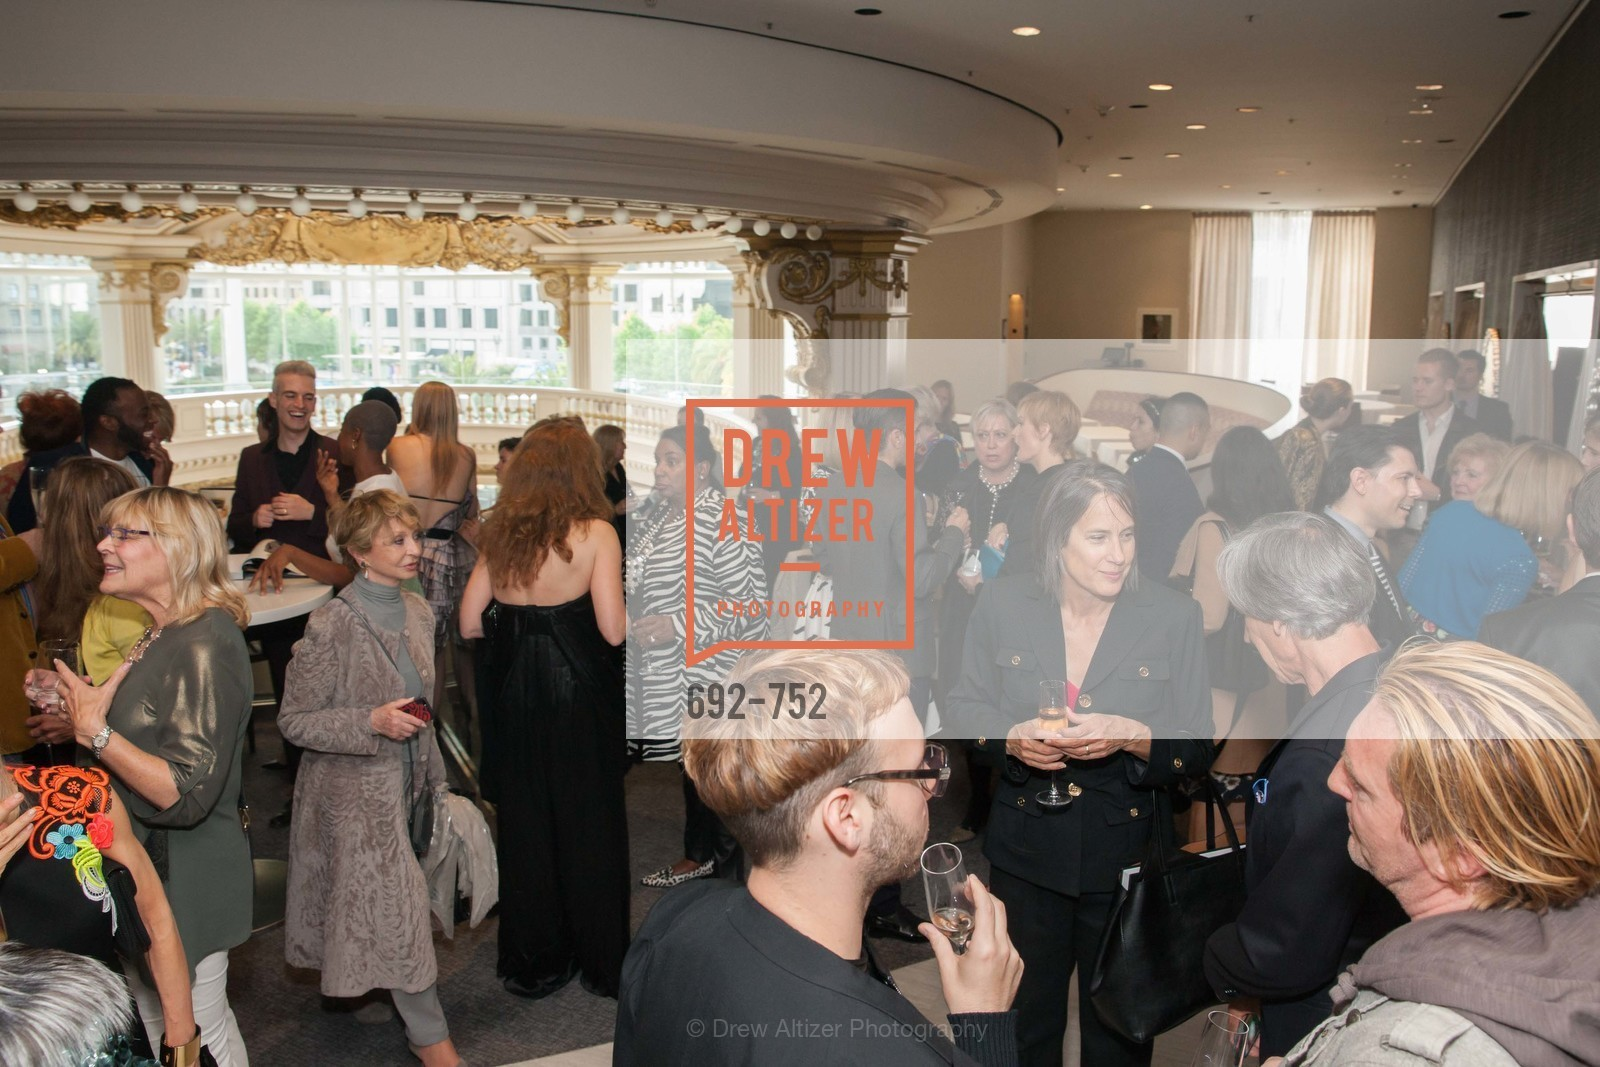 Atmosphere, Electric Fashion Book Signing with Christine Suppes & Ken Downing at THE ROTUNDA, NEIMAN MARCUS, Neiman Marcus, Rotunda, May 27th, 2015,Drew Altizer, Drew Altizer Photography, full-service agency, private events, San Francisco photographer, photographer california